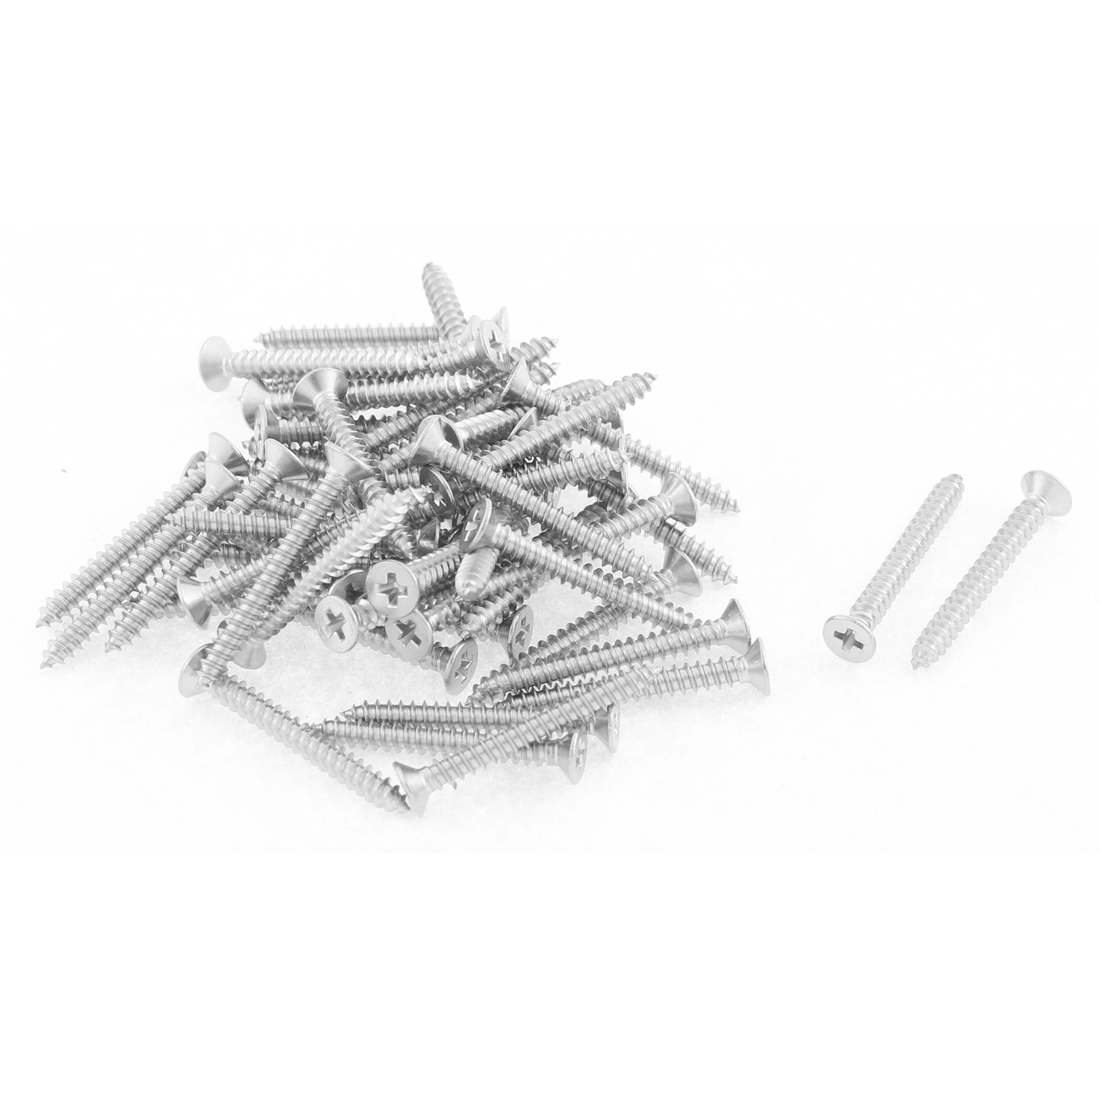 50 Pcs 2.9mmx25mm Stainless Steel Phillips Flat Head Sheet Self Tapping Screws